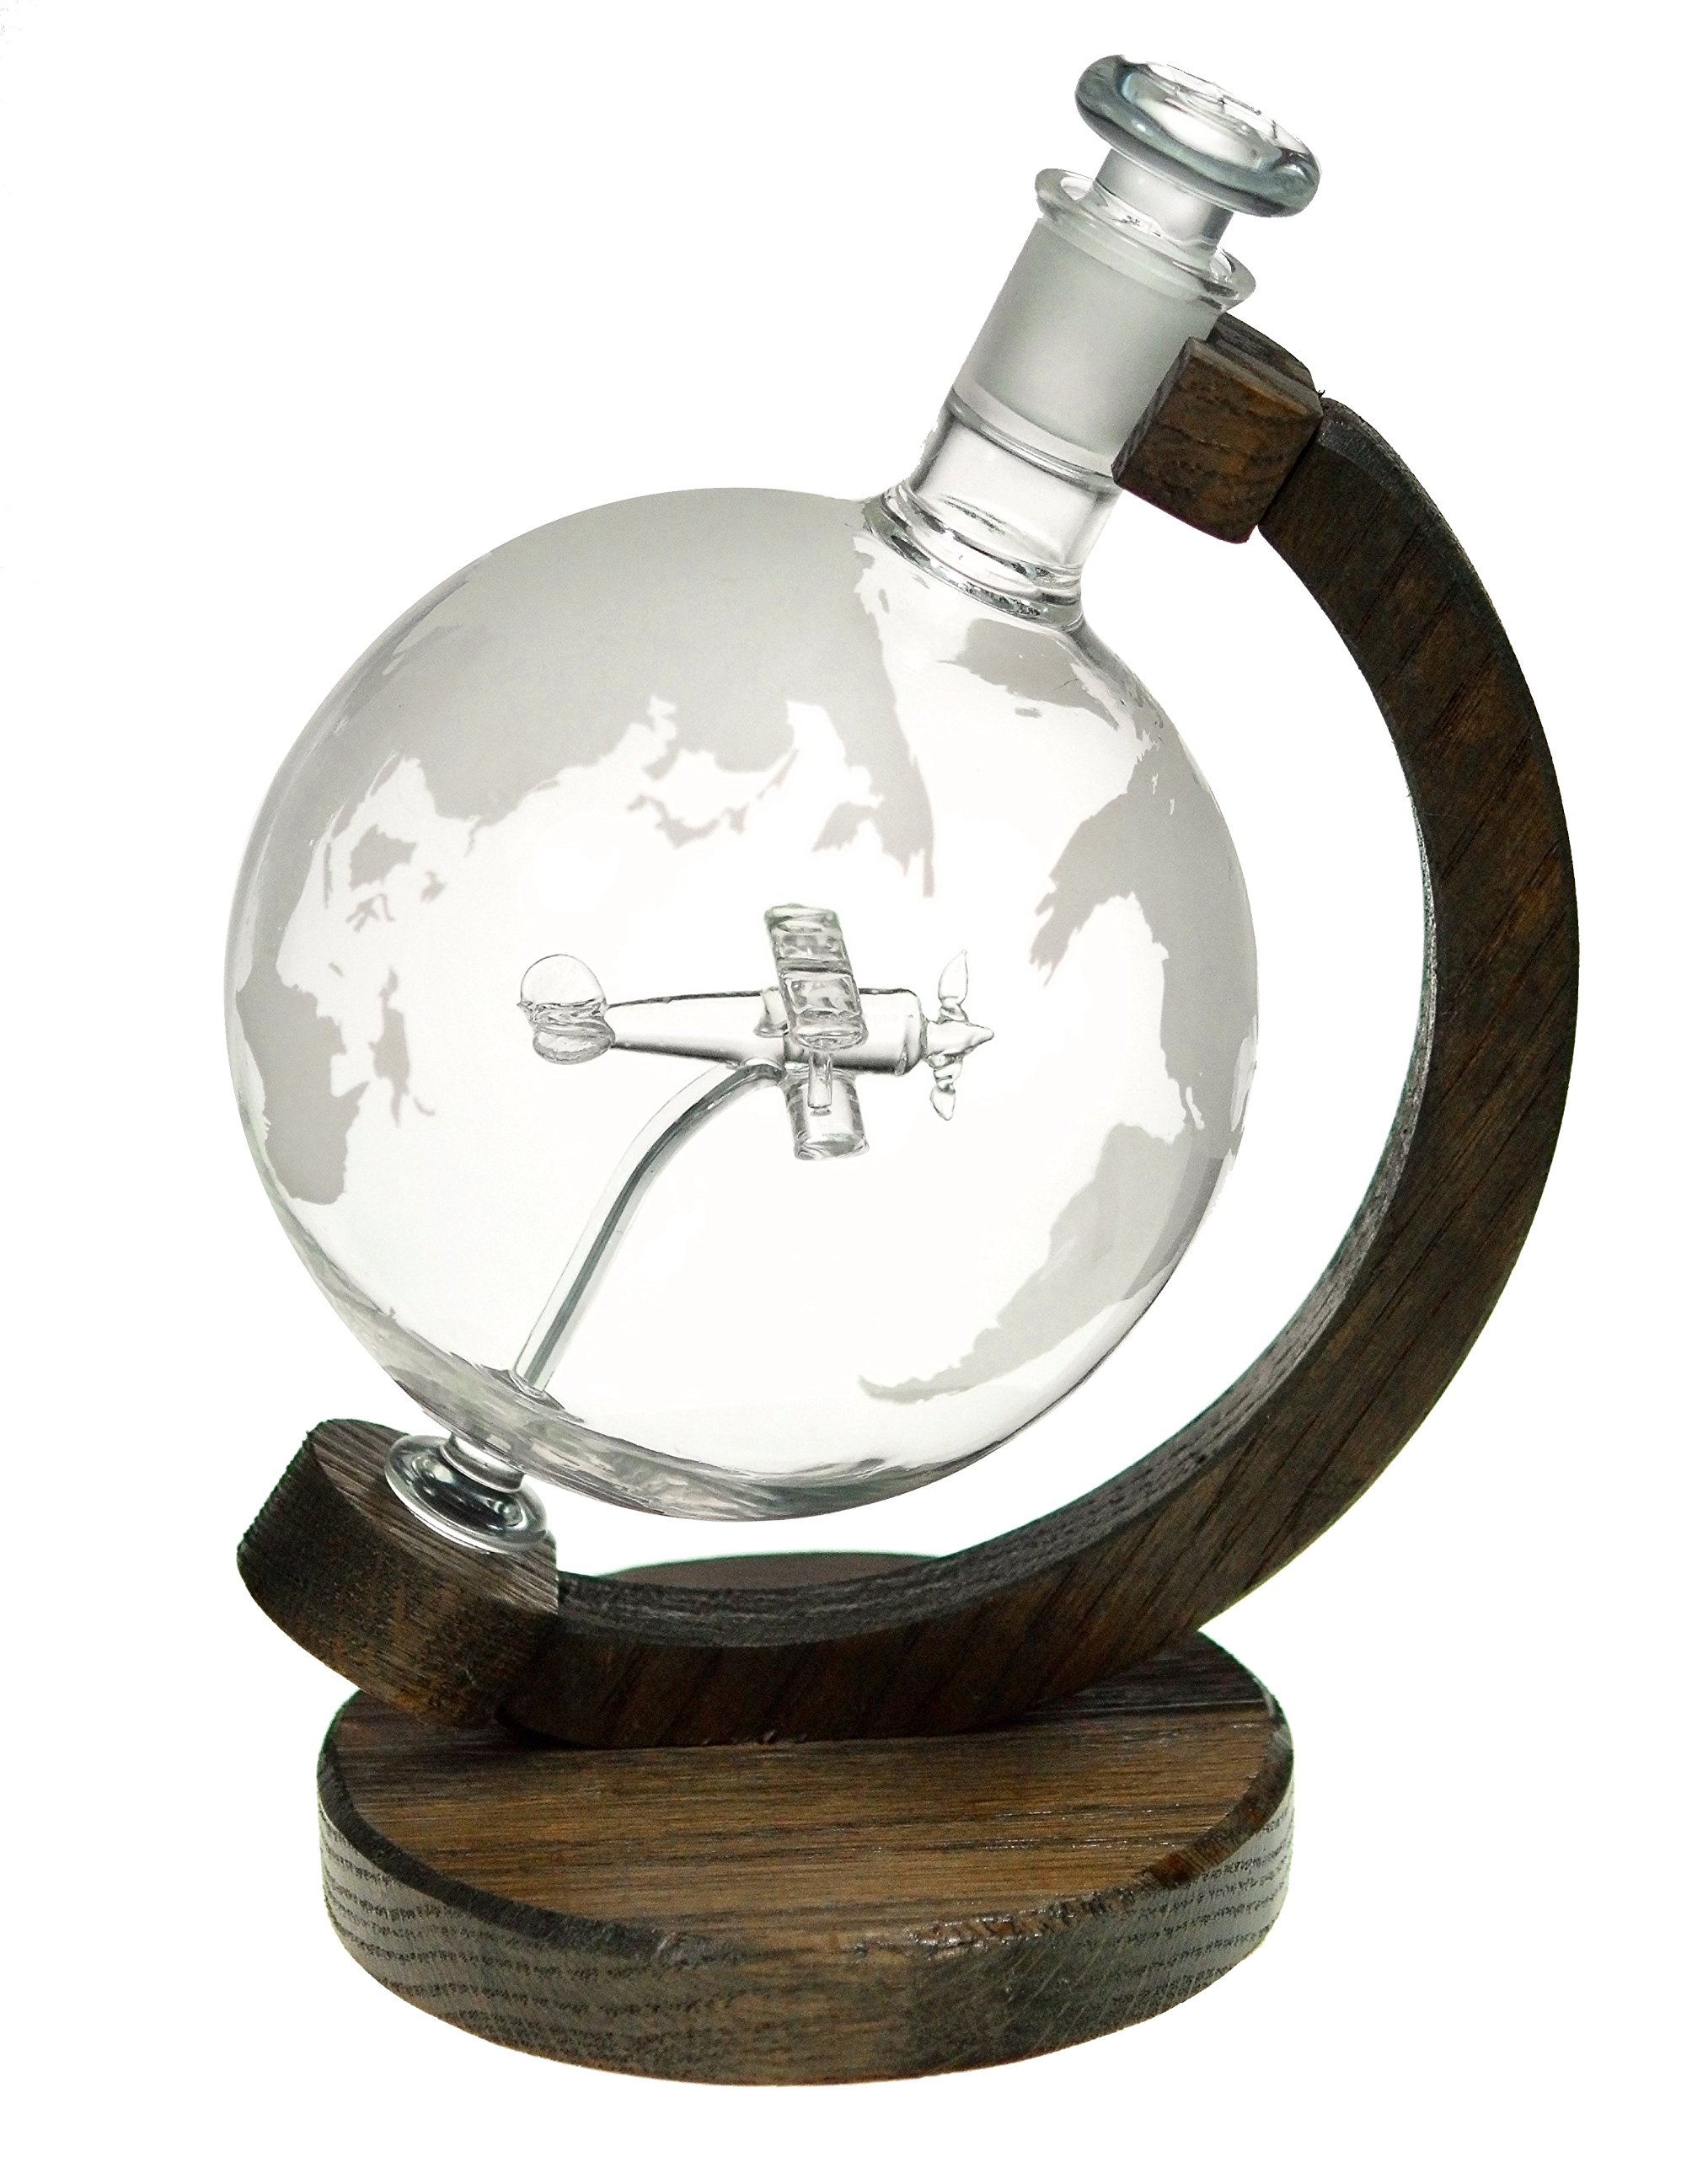 Etched Globe Liquor Decanter - Scotch Whiskey Decanter - (7+ Designs Available) - 1000ml Glass Decanter for Alcohol - Vodka, Bourbon, Rum, Wine, Tequila or Even Mouthwash - Sopwith Camel (Biplane)